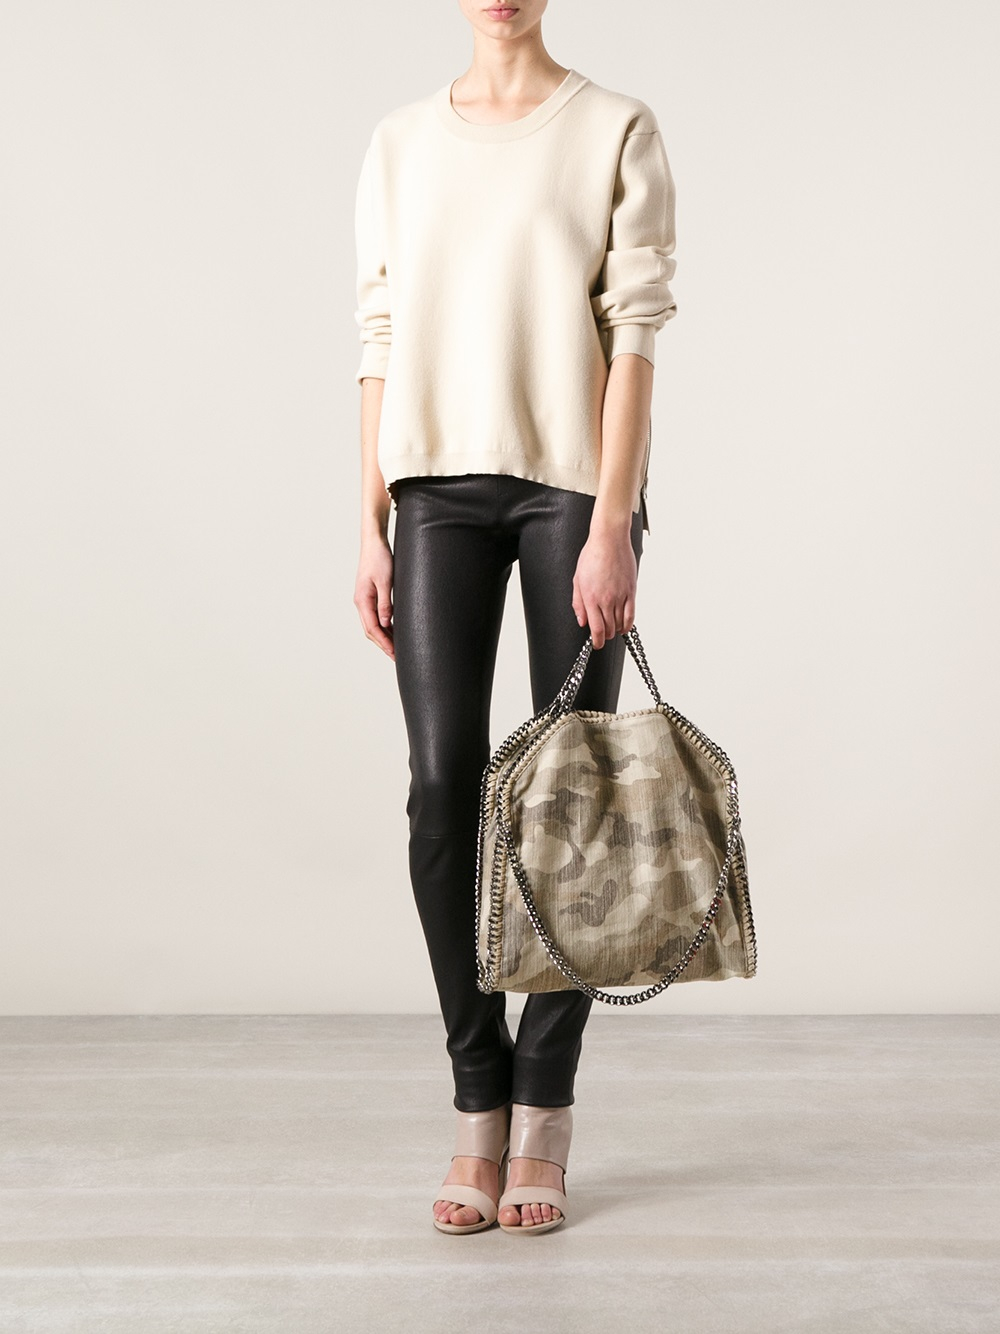 Lyst - Stella Mccartney Falabella Large Foldover Tote in Natural 201fa640792a